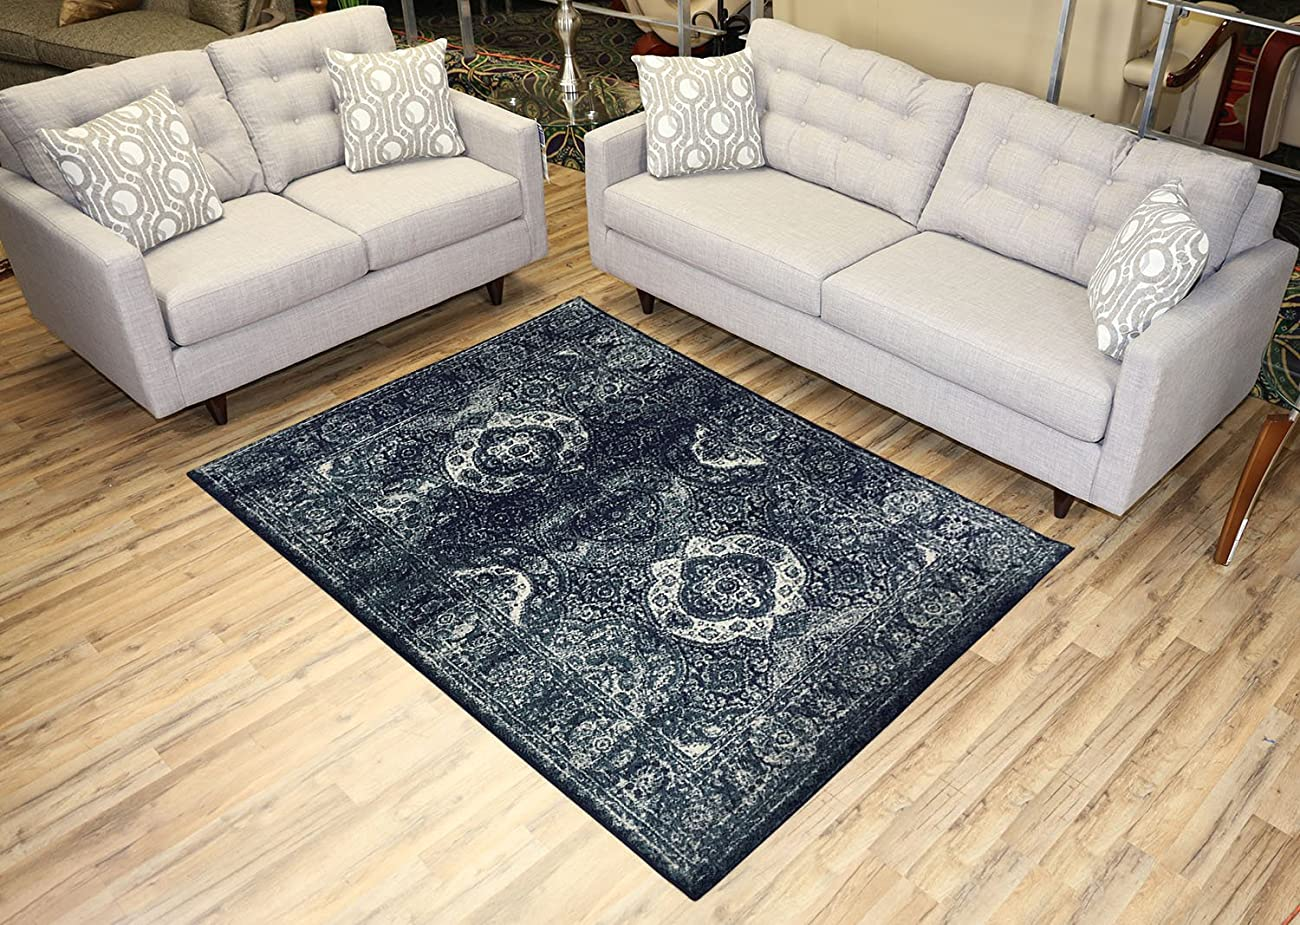 Studio Collection Vintage French Aubusson Design Contemporary Modern Area Rug Rugs 3 Different Color Options (Aubusson Navy Blue, 5 x 7) 0